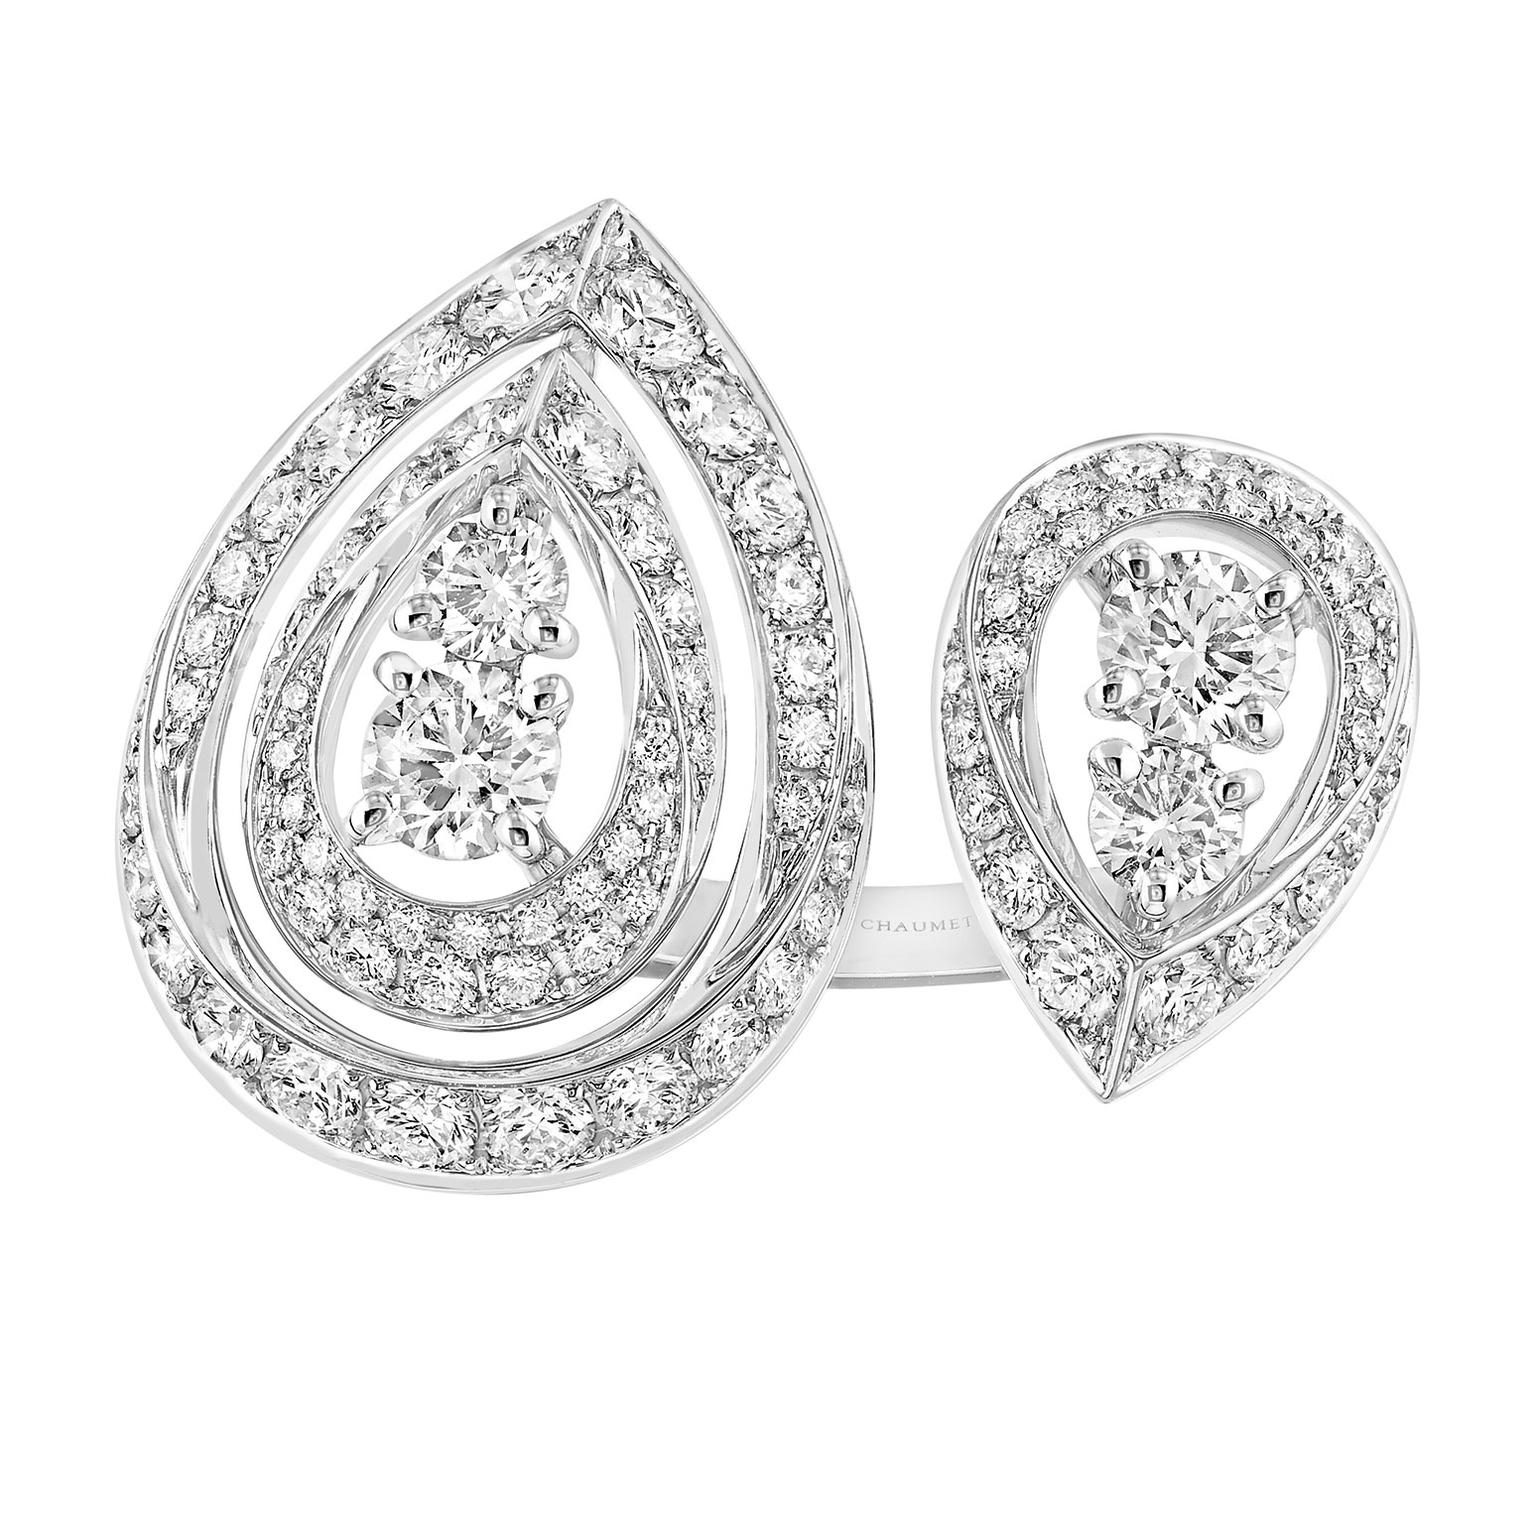 Chaumet Toi & Moi Joséphine Ronde de Nuit diamond ring in white gold